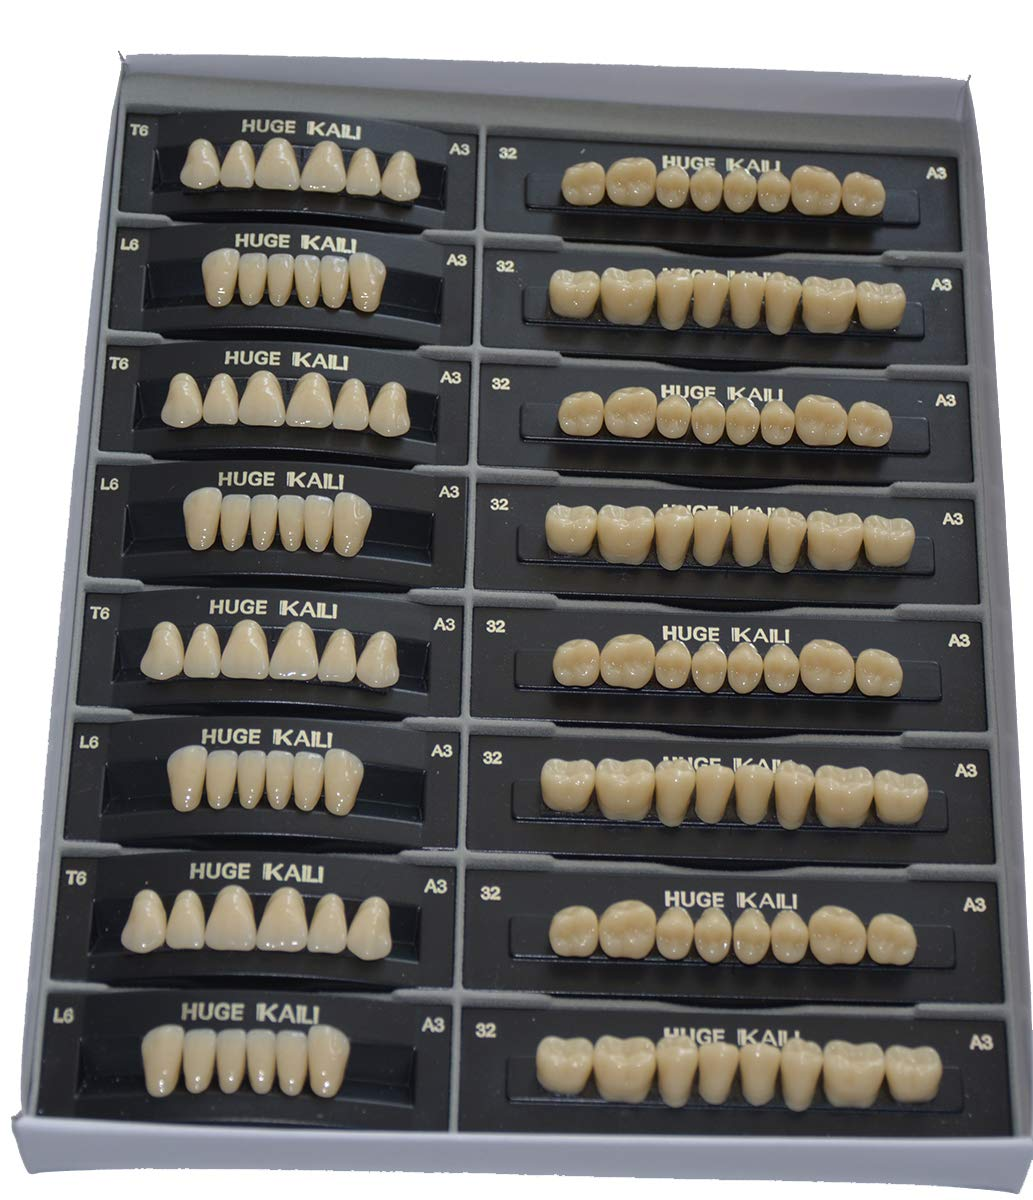 TJIRIS Full Mouth Resin Teeth False Tooth with Two Layer Color 10 Boxes by TJIRIS (Image #1)